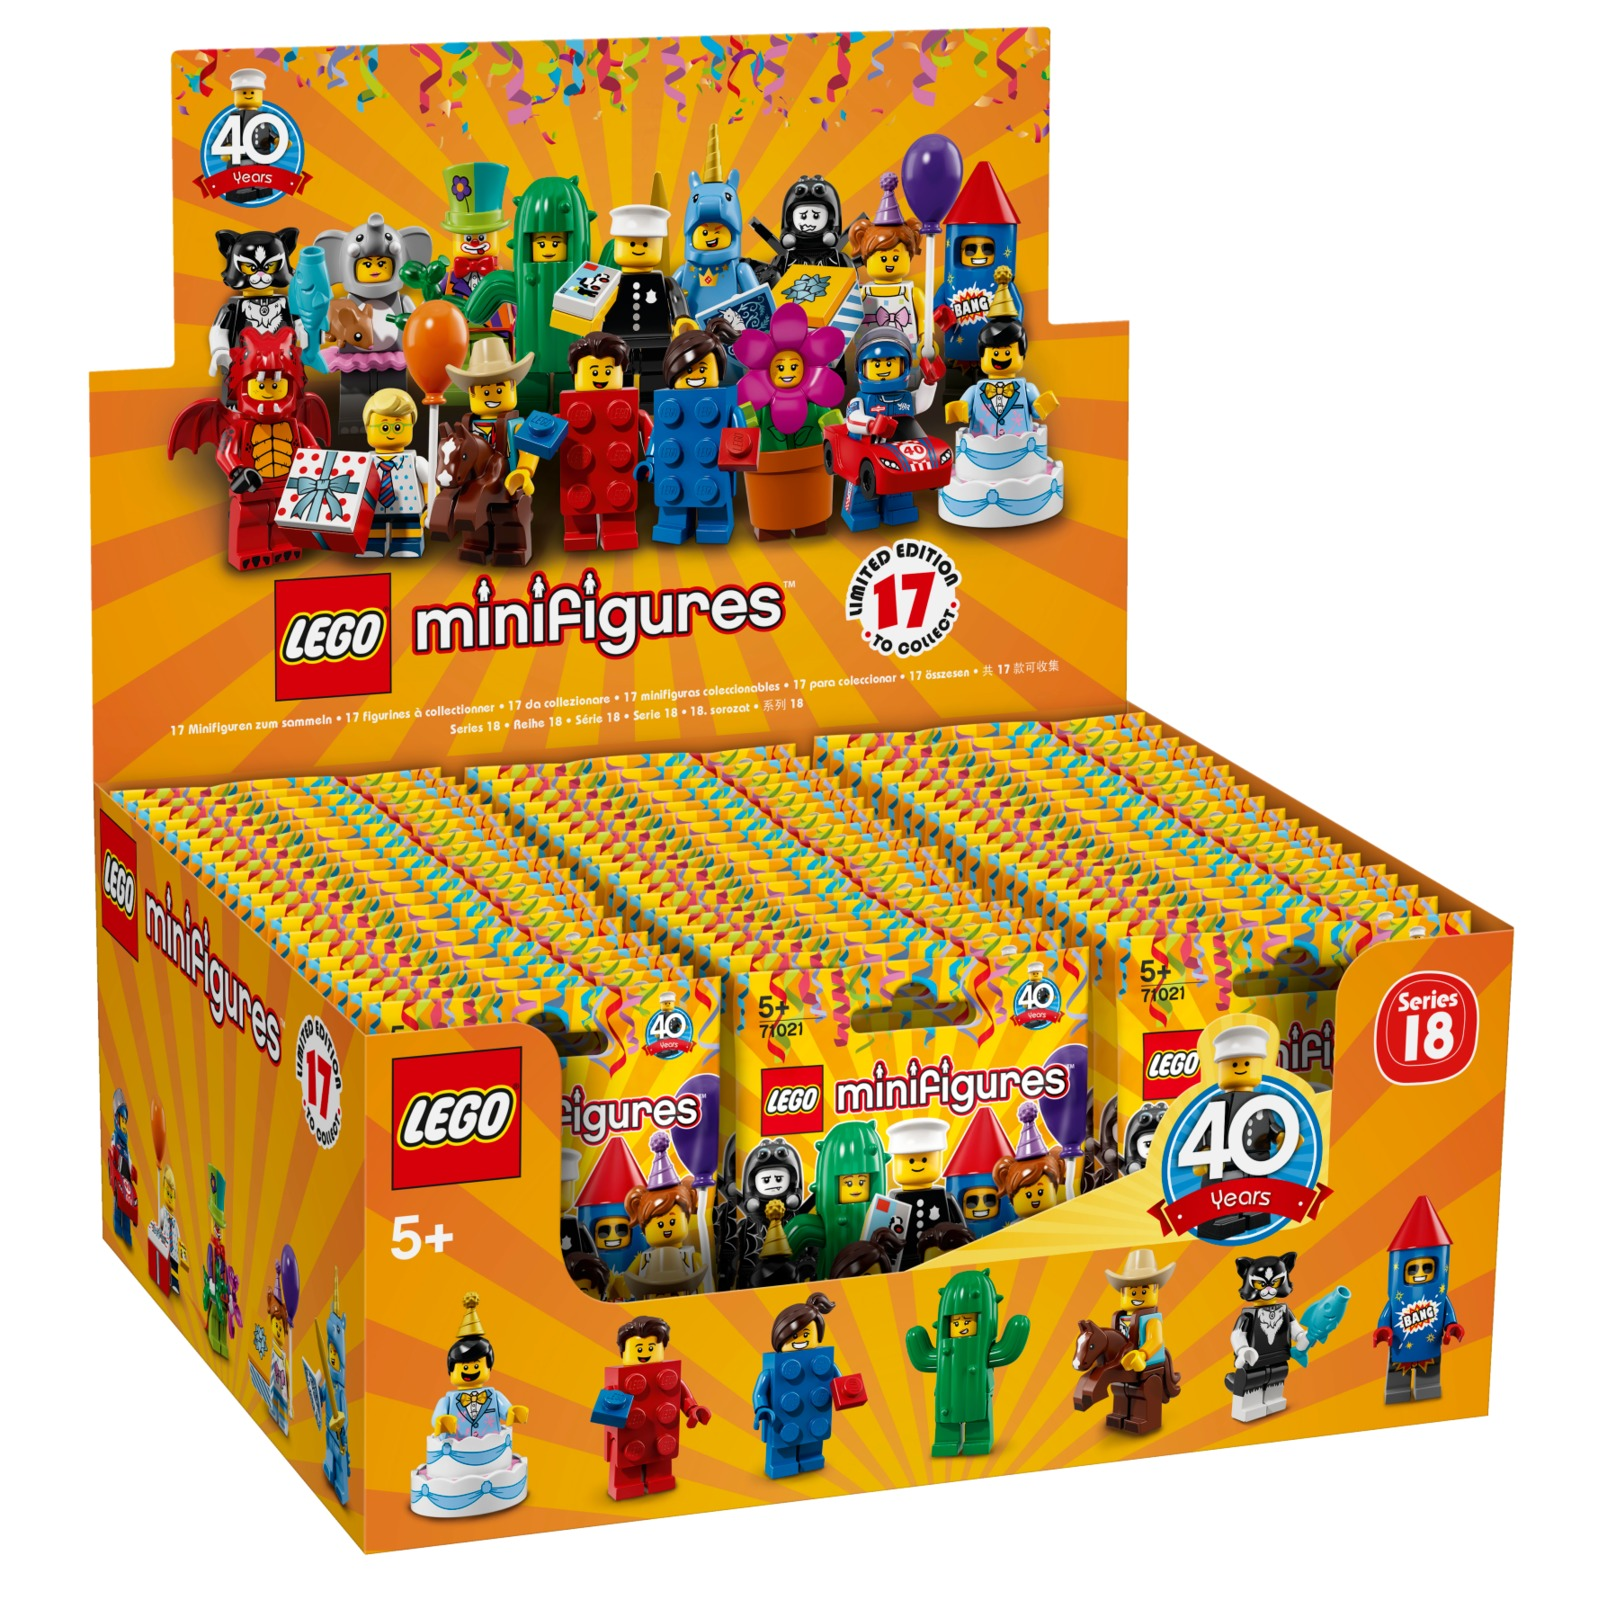 Lego Figures Toys : Lego minifigures series  toy at mighty ape nz